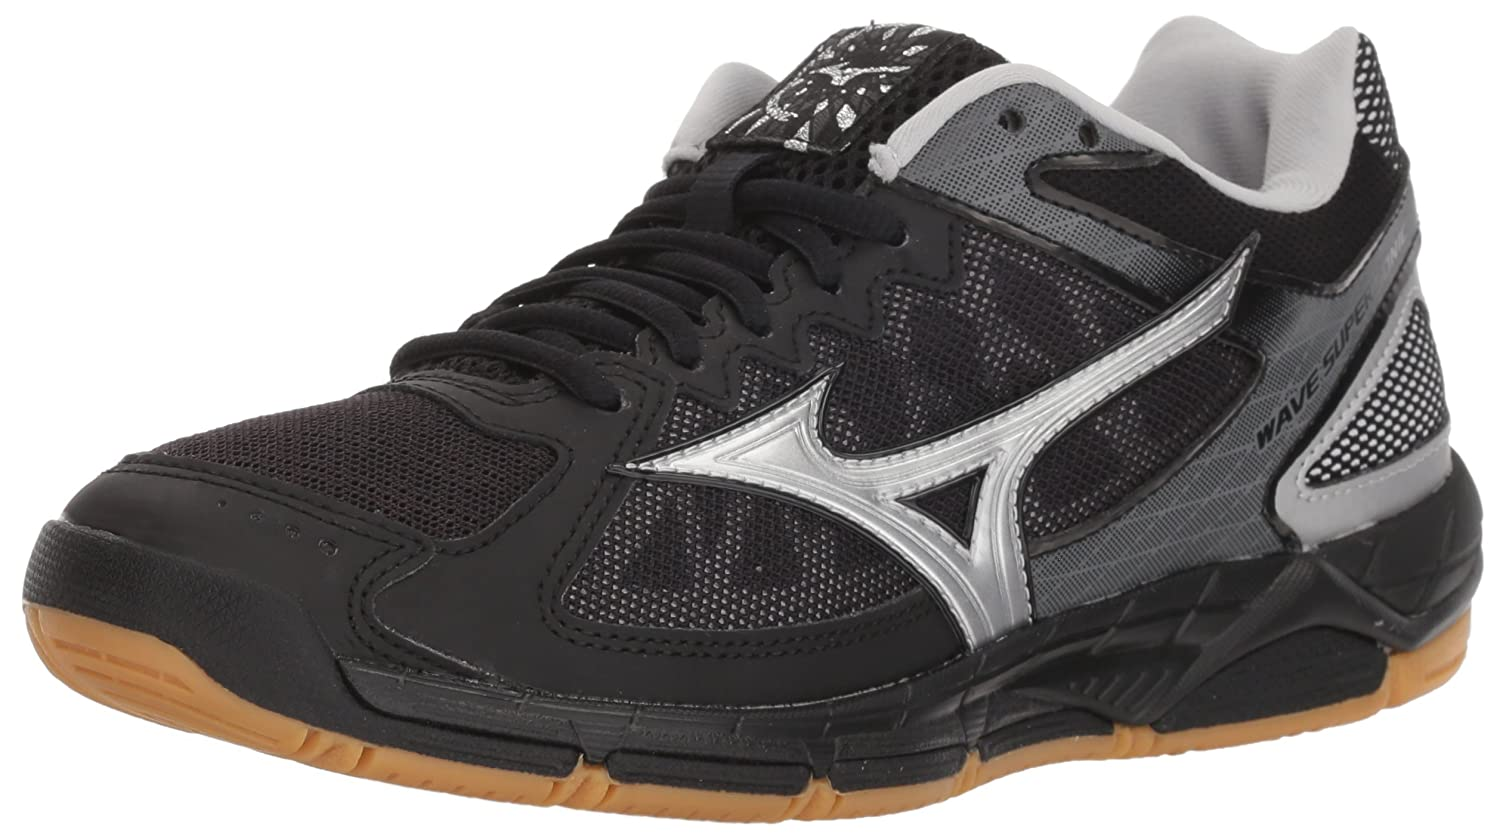 Black Silver Mizuno Women's Wave Supersonic Volleyball shoes